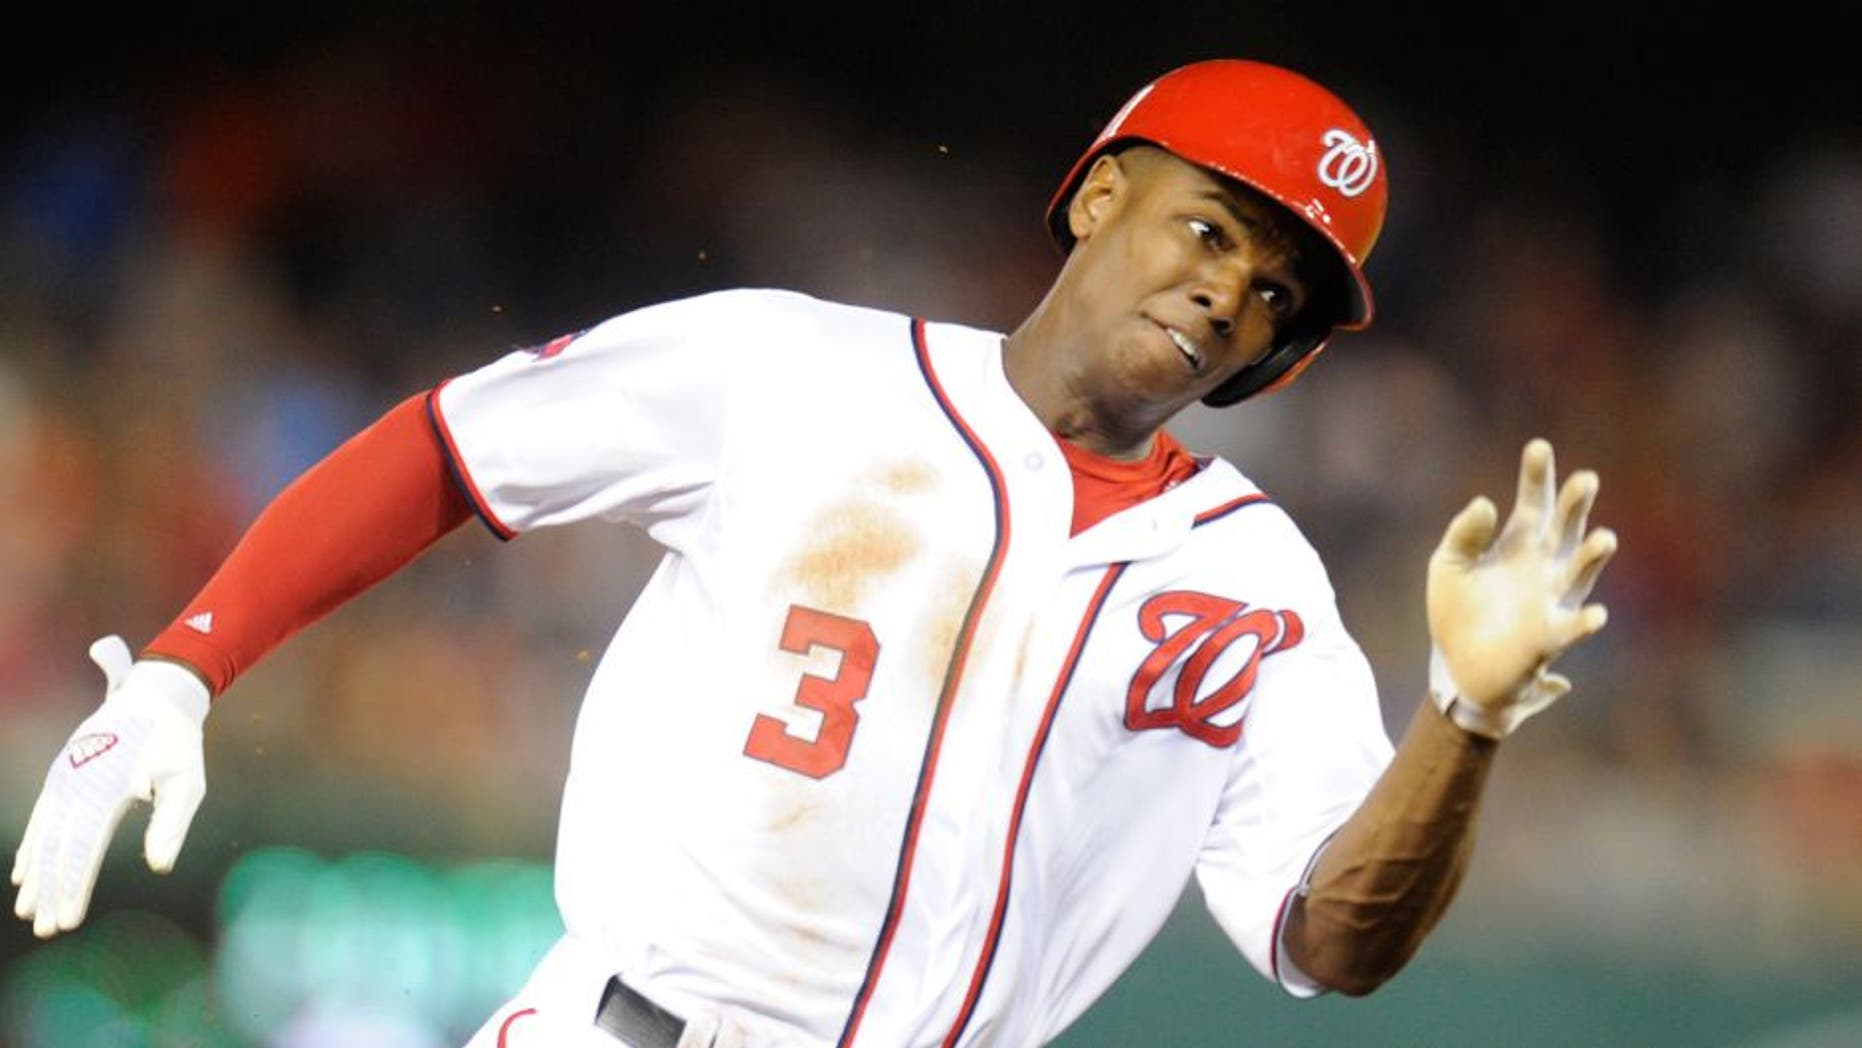 WASHINGTON, DC - JUNE 05: Michael Taylor #3 of the Washington Nationals runs to third base during a baseball game against the Chicago Cubs at Nationals Park on June 5, 2015 in Washington, DC. The Nationals won 7-5. (Photo by Mitchell Layton/Getty Images)